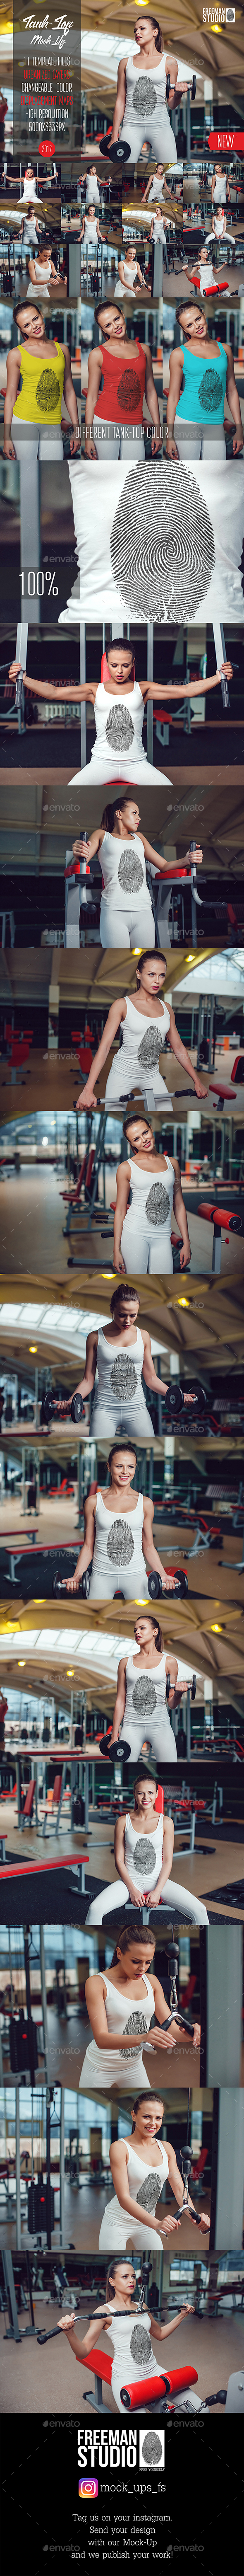 Sport Tank-Top Mock-Up Vol.1 2017 - Product Mock-Ups Graphics